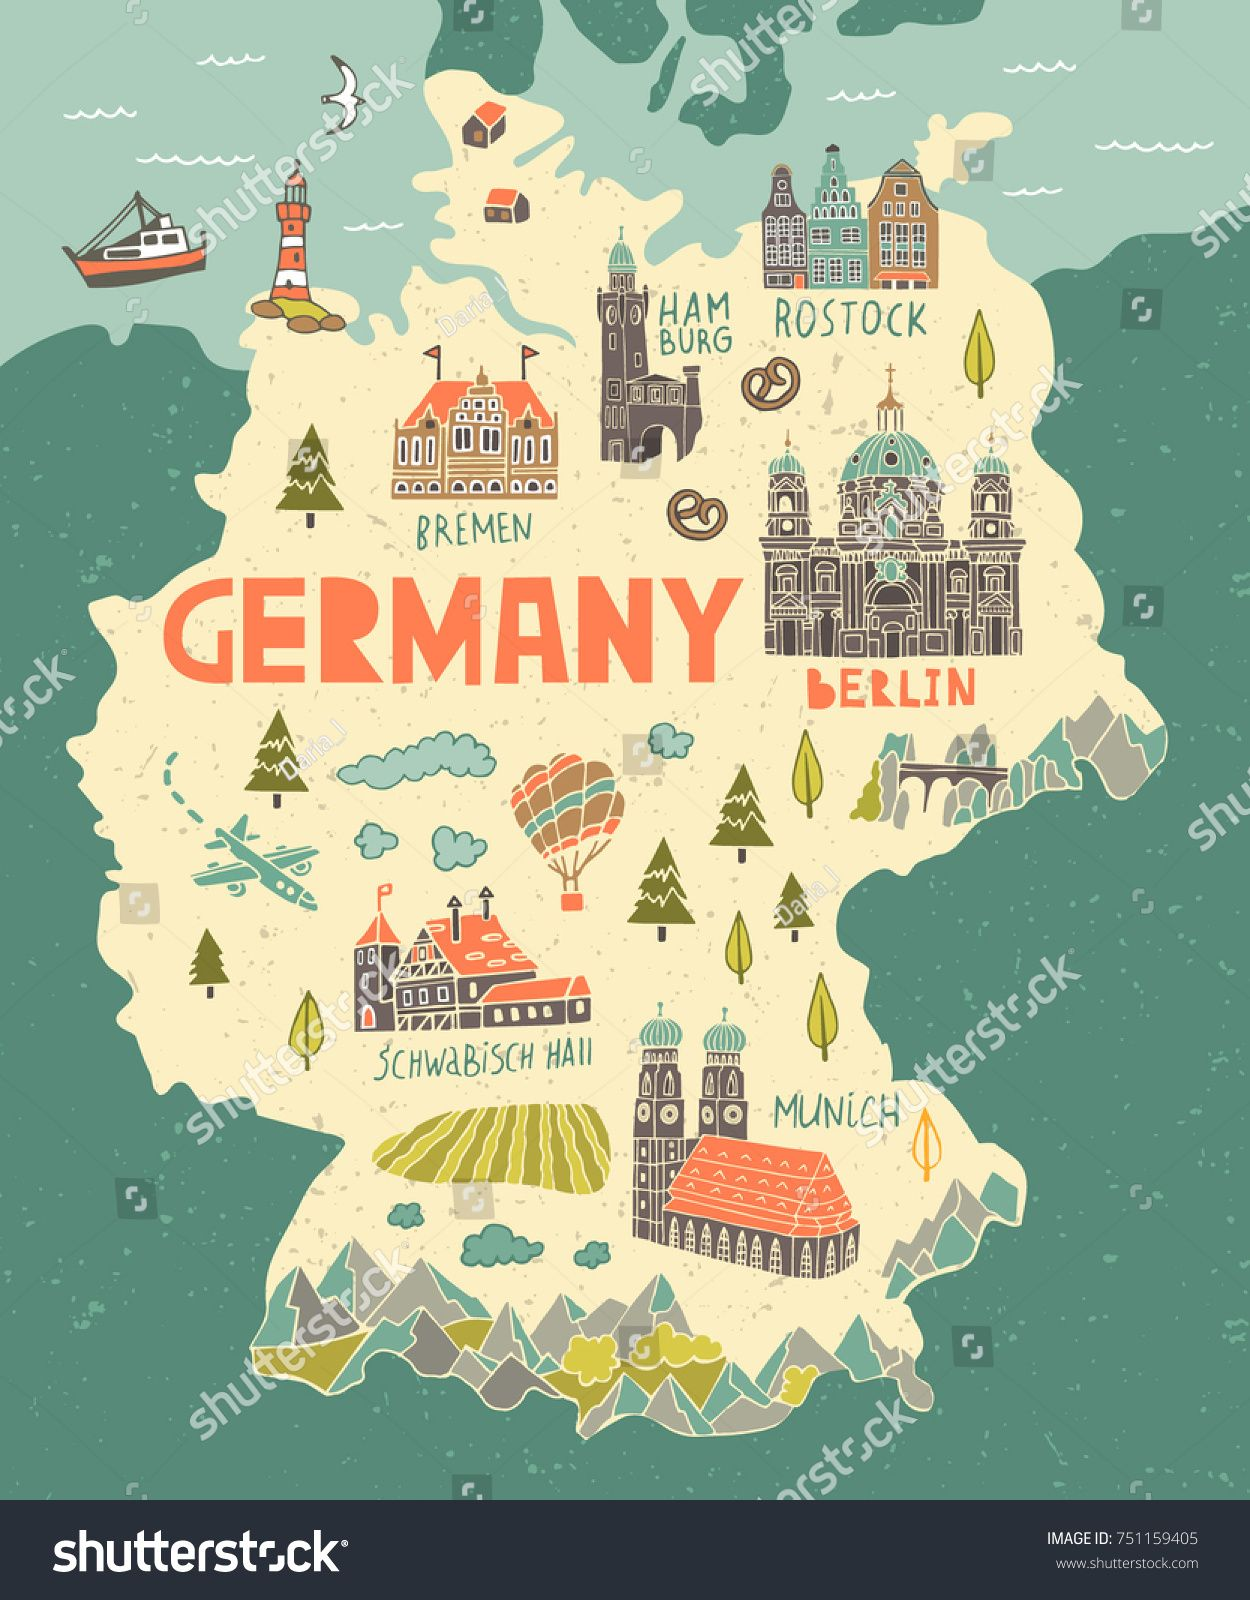 map #illustration #travel #germany | карты in 2019 | Germany travel on map travel, medical illustration, map art, map of victoria, map of belfast and surrounding areas, map paper, map background, map great britain, map of spanish speaking world, technical illustration, map infographic, map key, map print, product illustration, map books, map of california and mexico, map making, map of the south sewanee university, map cartoon, digital illustration, map app, map of louisiana and mississippi, map clipart, architectural illustration, map design,